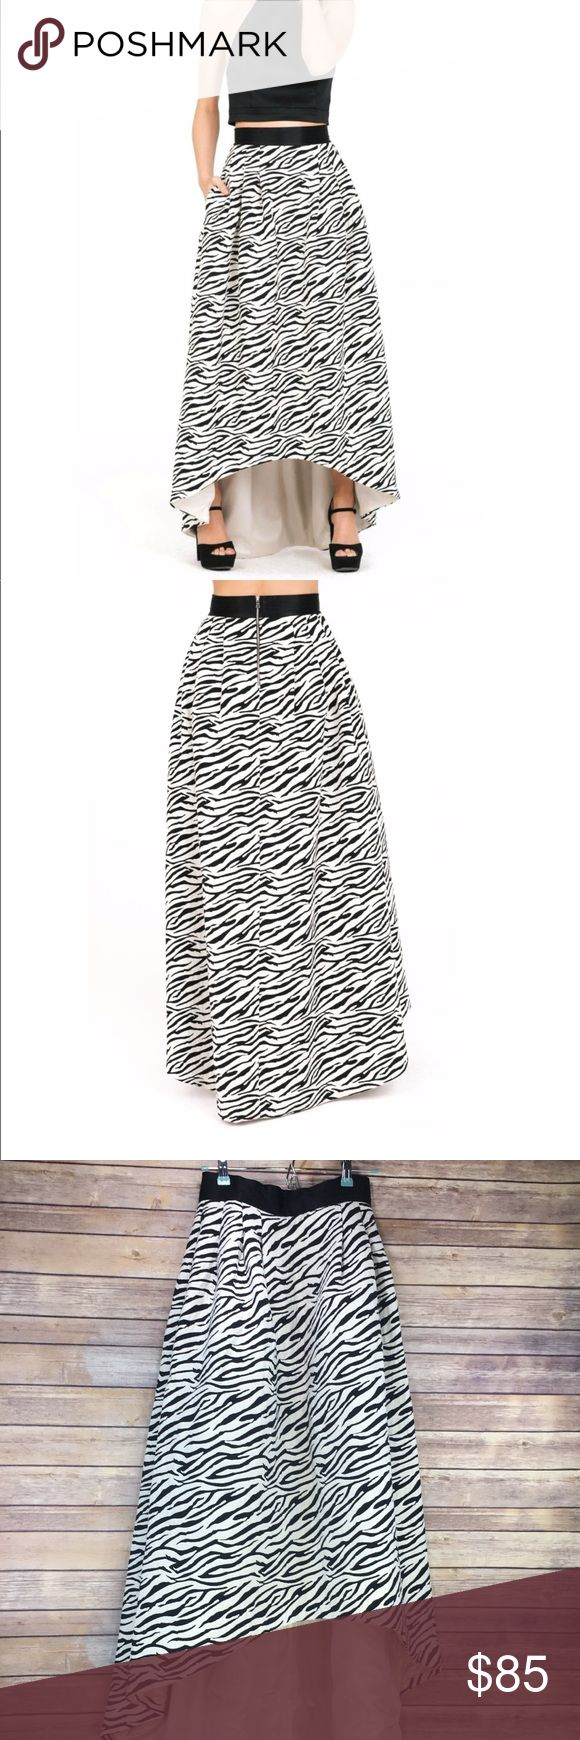 "High-low Zebra Print Skirt Amazing!!! New without tags- I bought this over the summer at a boutique near me, but never wore it.   It is an off-white white, heavy quality fabric. Beautiful structure! Not too heavy that you should be uncomfortable. Not a cheap material. Has two pockets!  Cannot be bundled due to weight!  Size 8, RUNS SMALL IN WAIST! I am 5'6"" 135lbs, and this is the perfect size for me.  Please see measurement photo to ensure fit prior to purchase. All measurements are…"